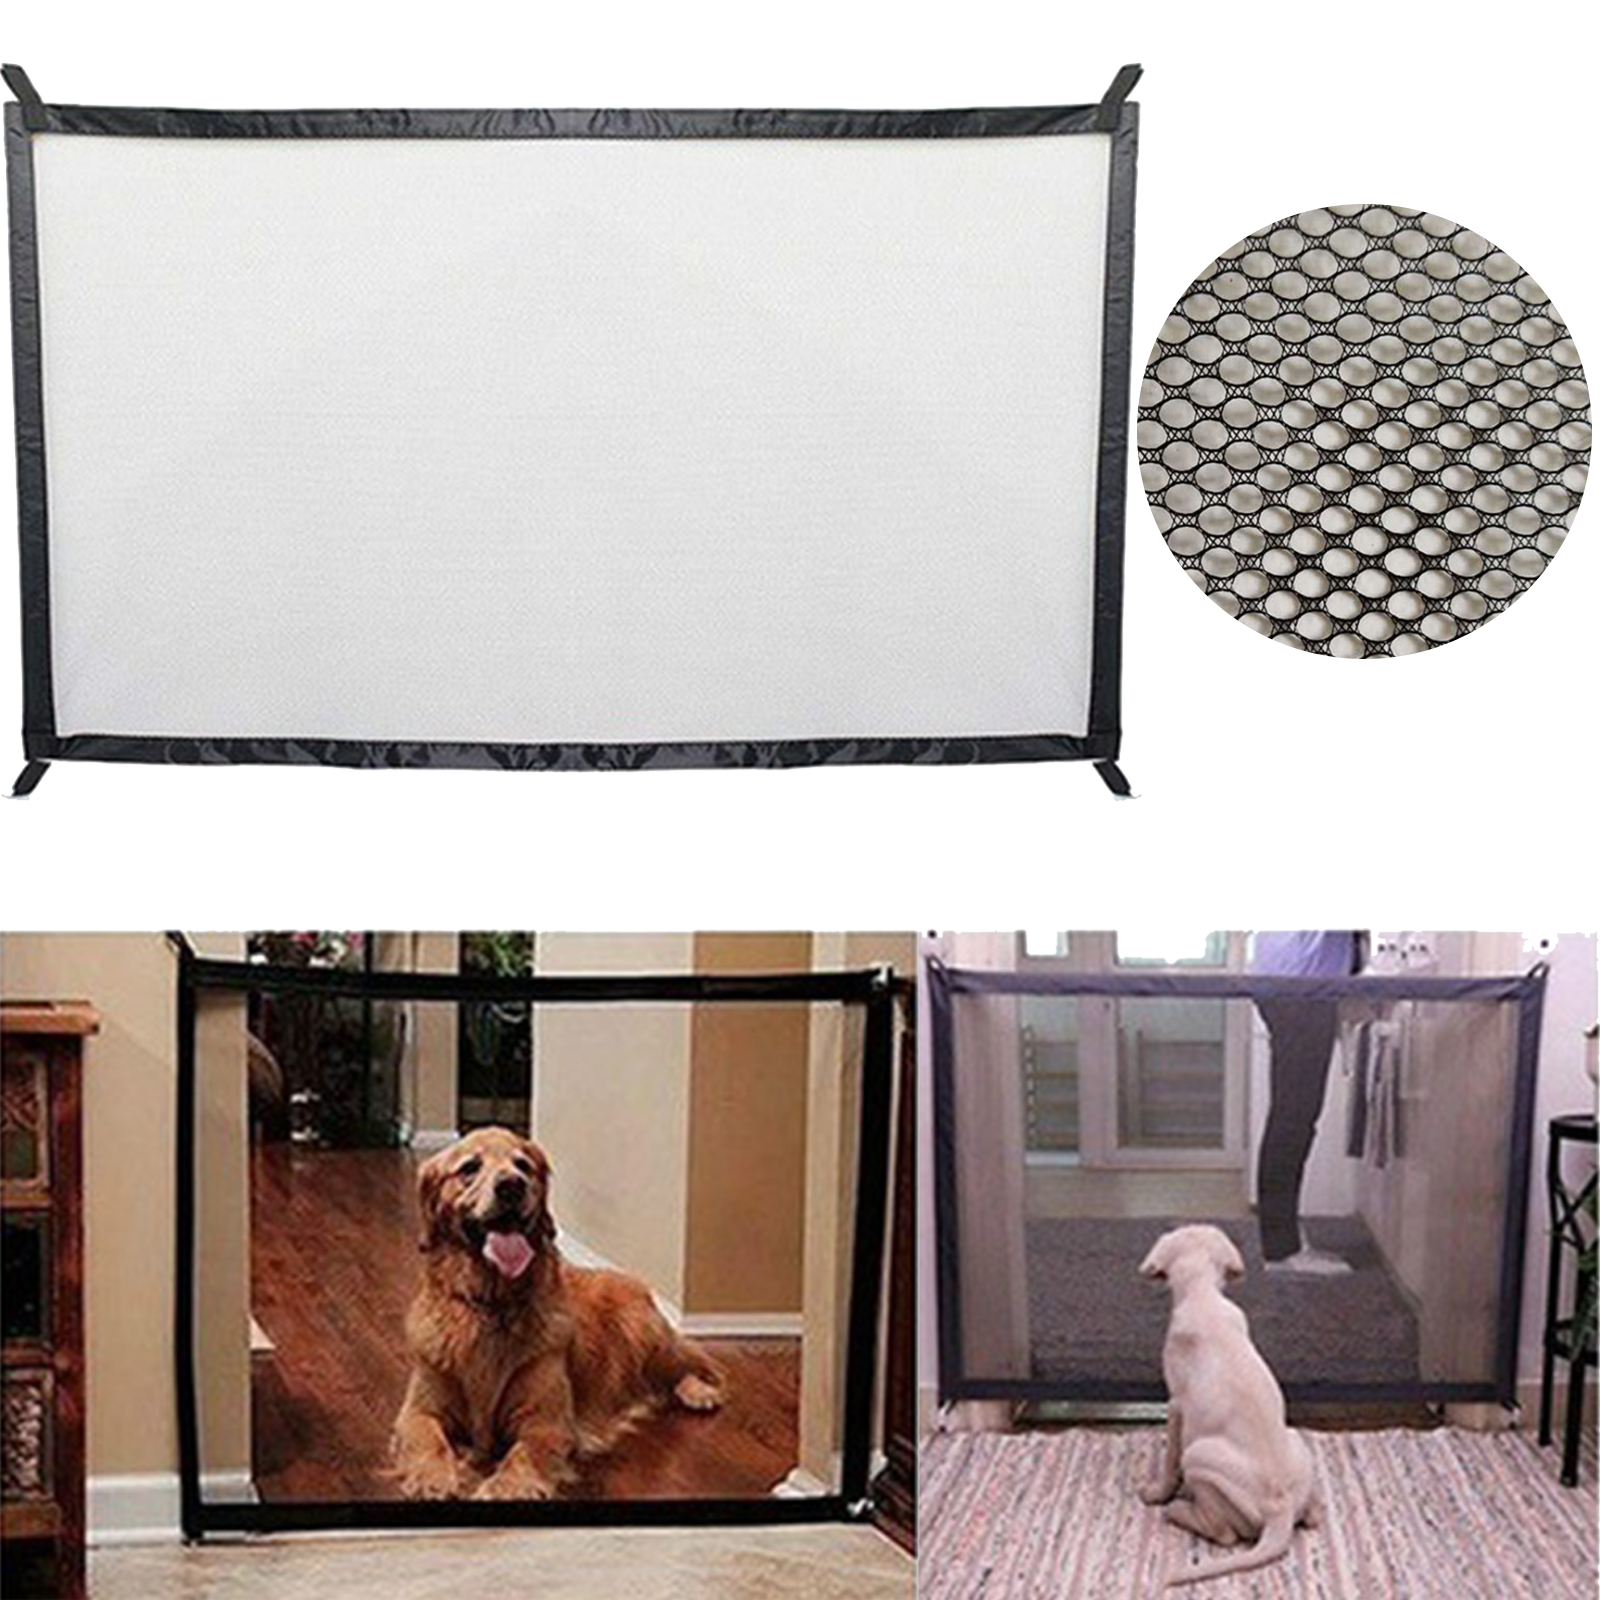 Pet Barrier Dog Gate Breathable Mesh Dog Fence For Indoor and Outdoor Safe Pet Dog Gate Safety Baby Pet Supplies Dropshipping